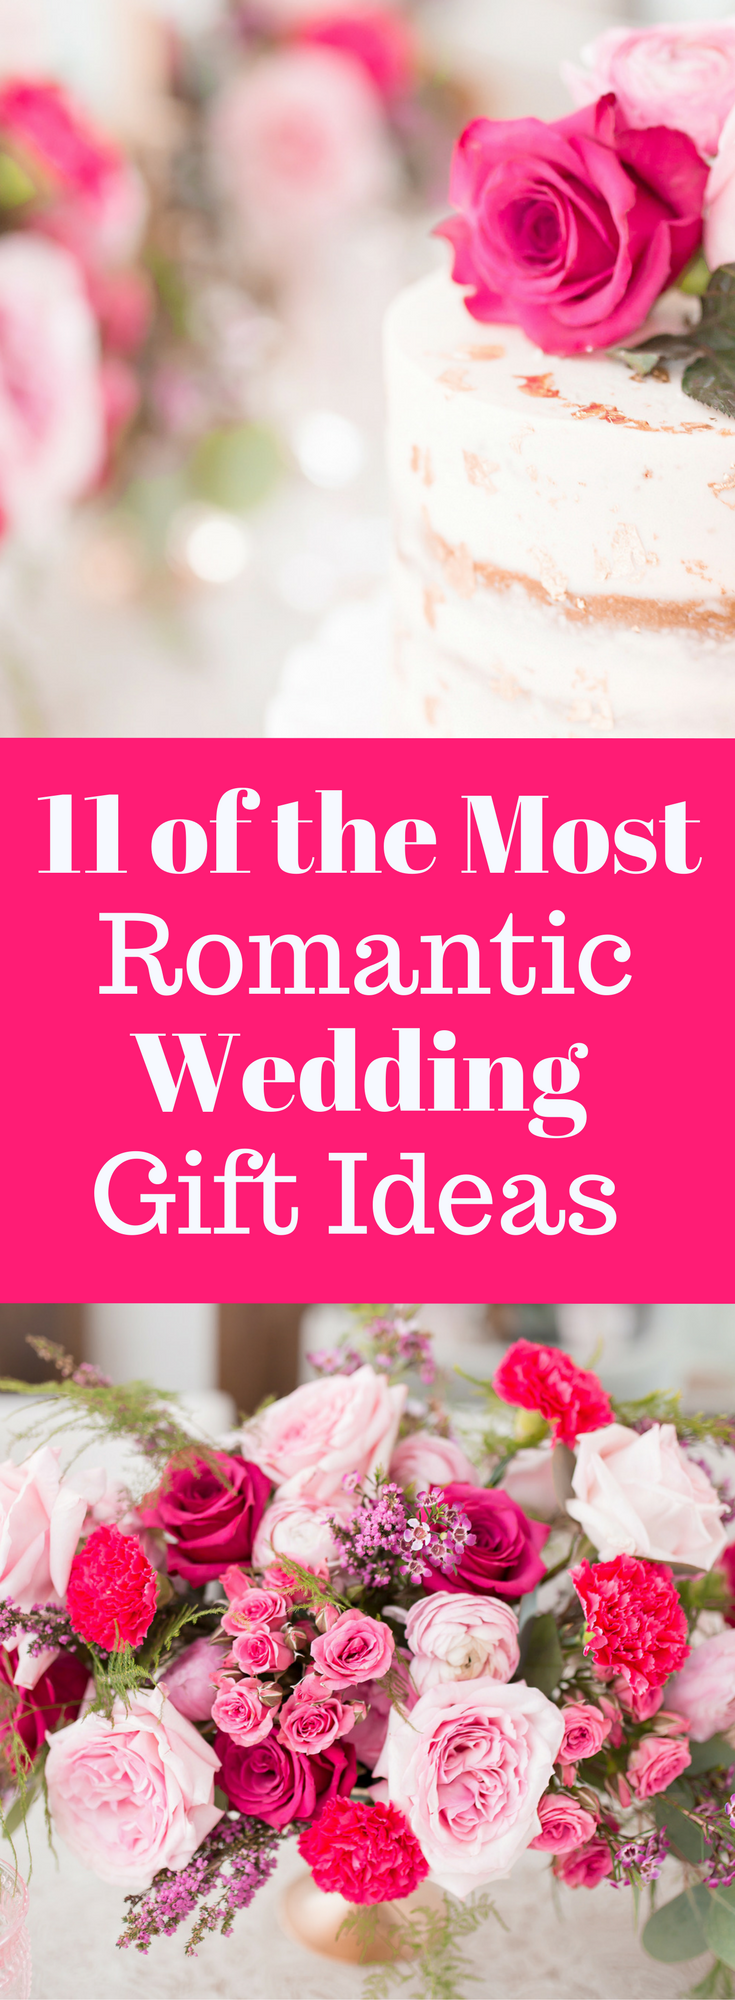 11 of the Most Romantic Wedding Gift Ideas EVER | Romantic, Gift and ...